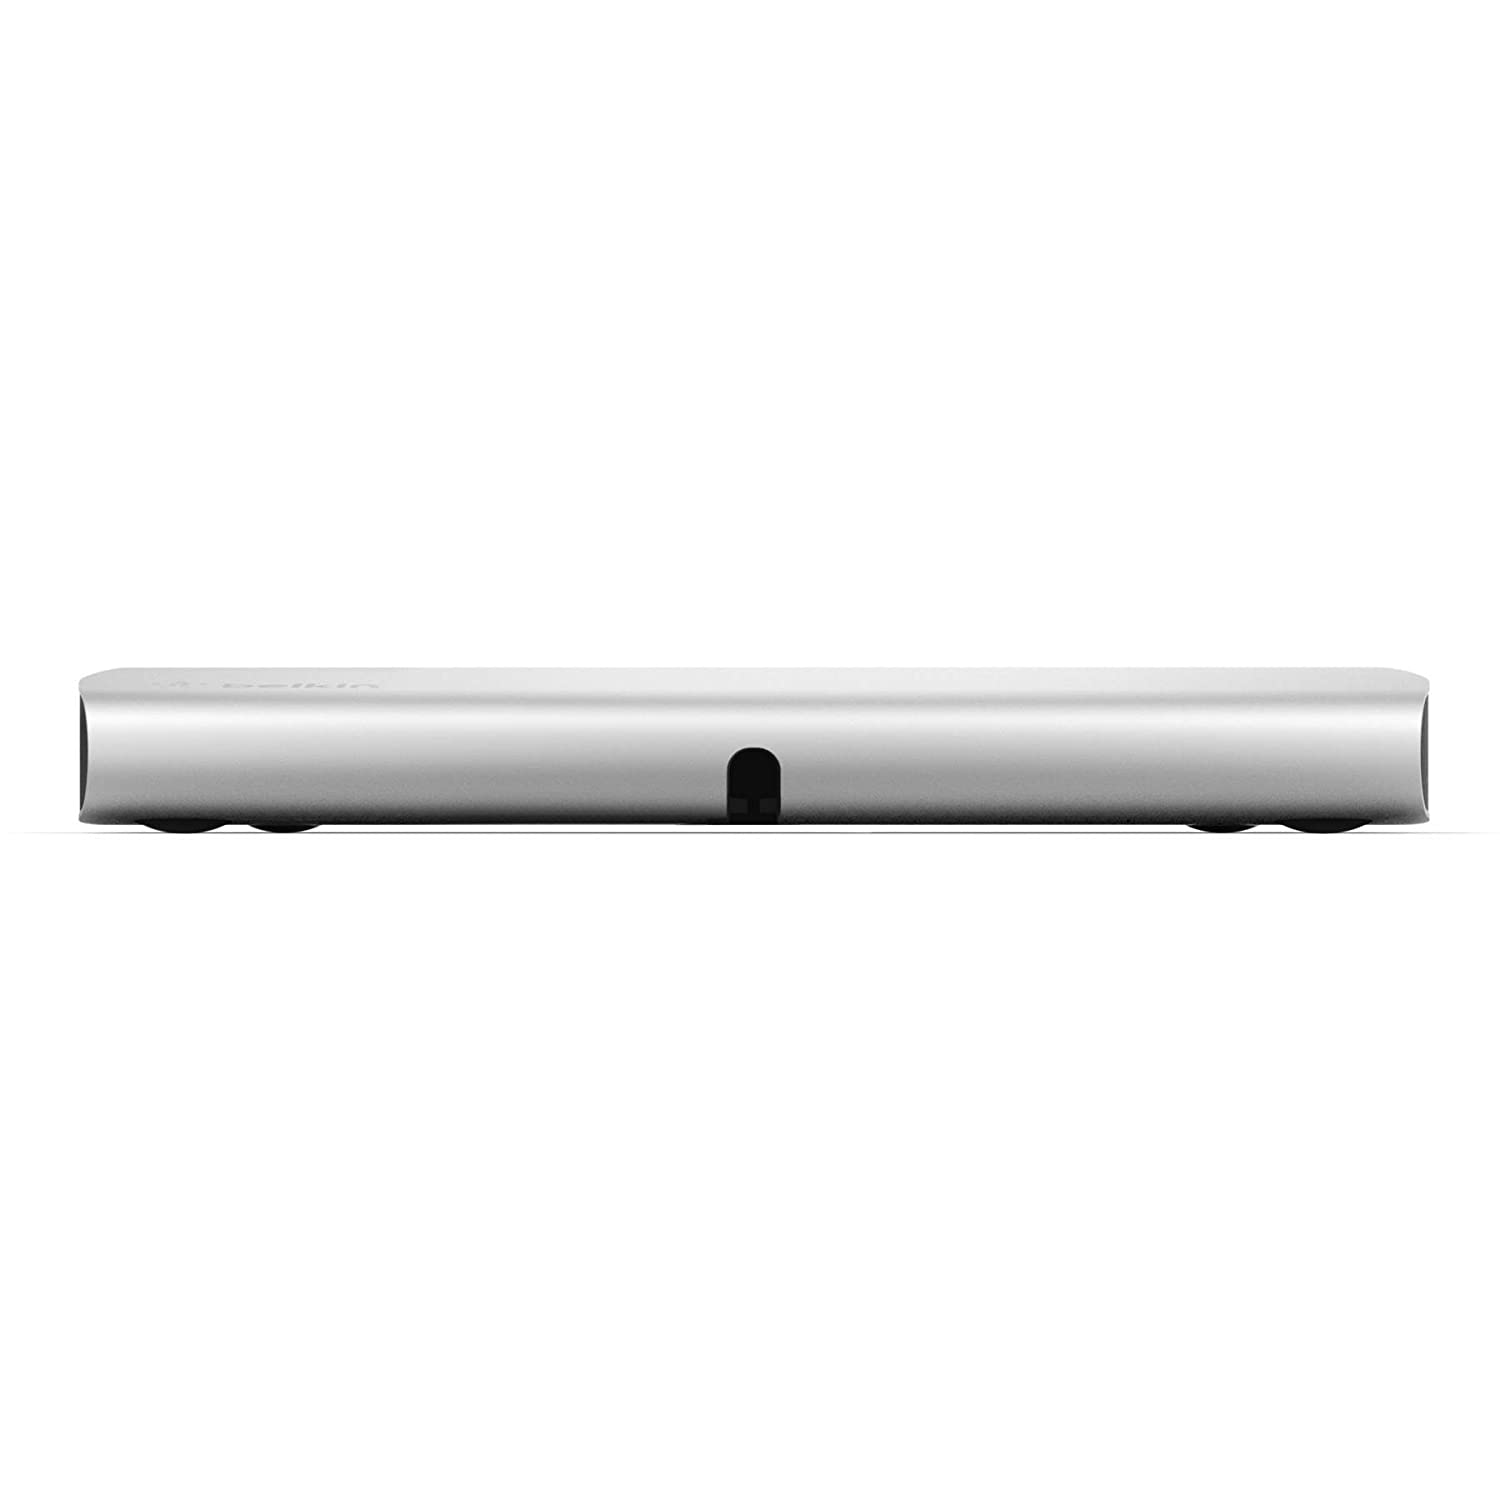 Belkin Thunderbolt Express Dock Cable Sold Separately Compatible with Thunderbolt 2 Technology